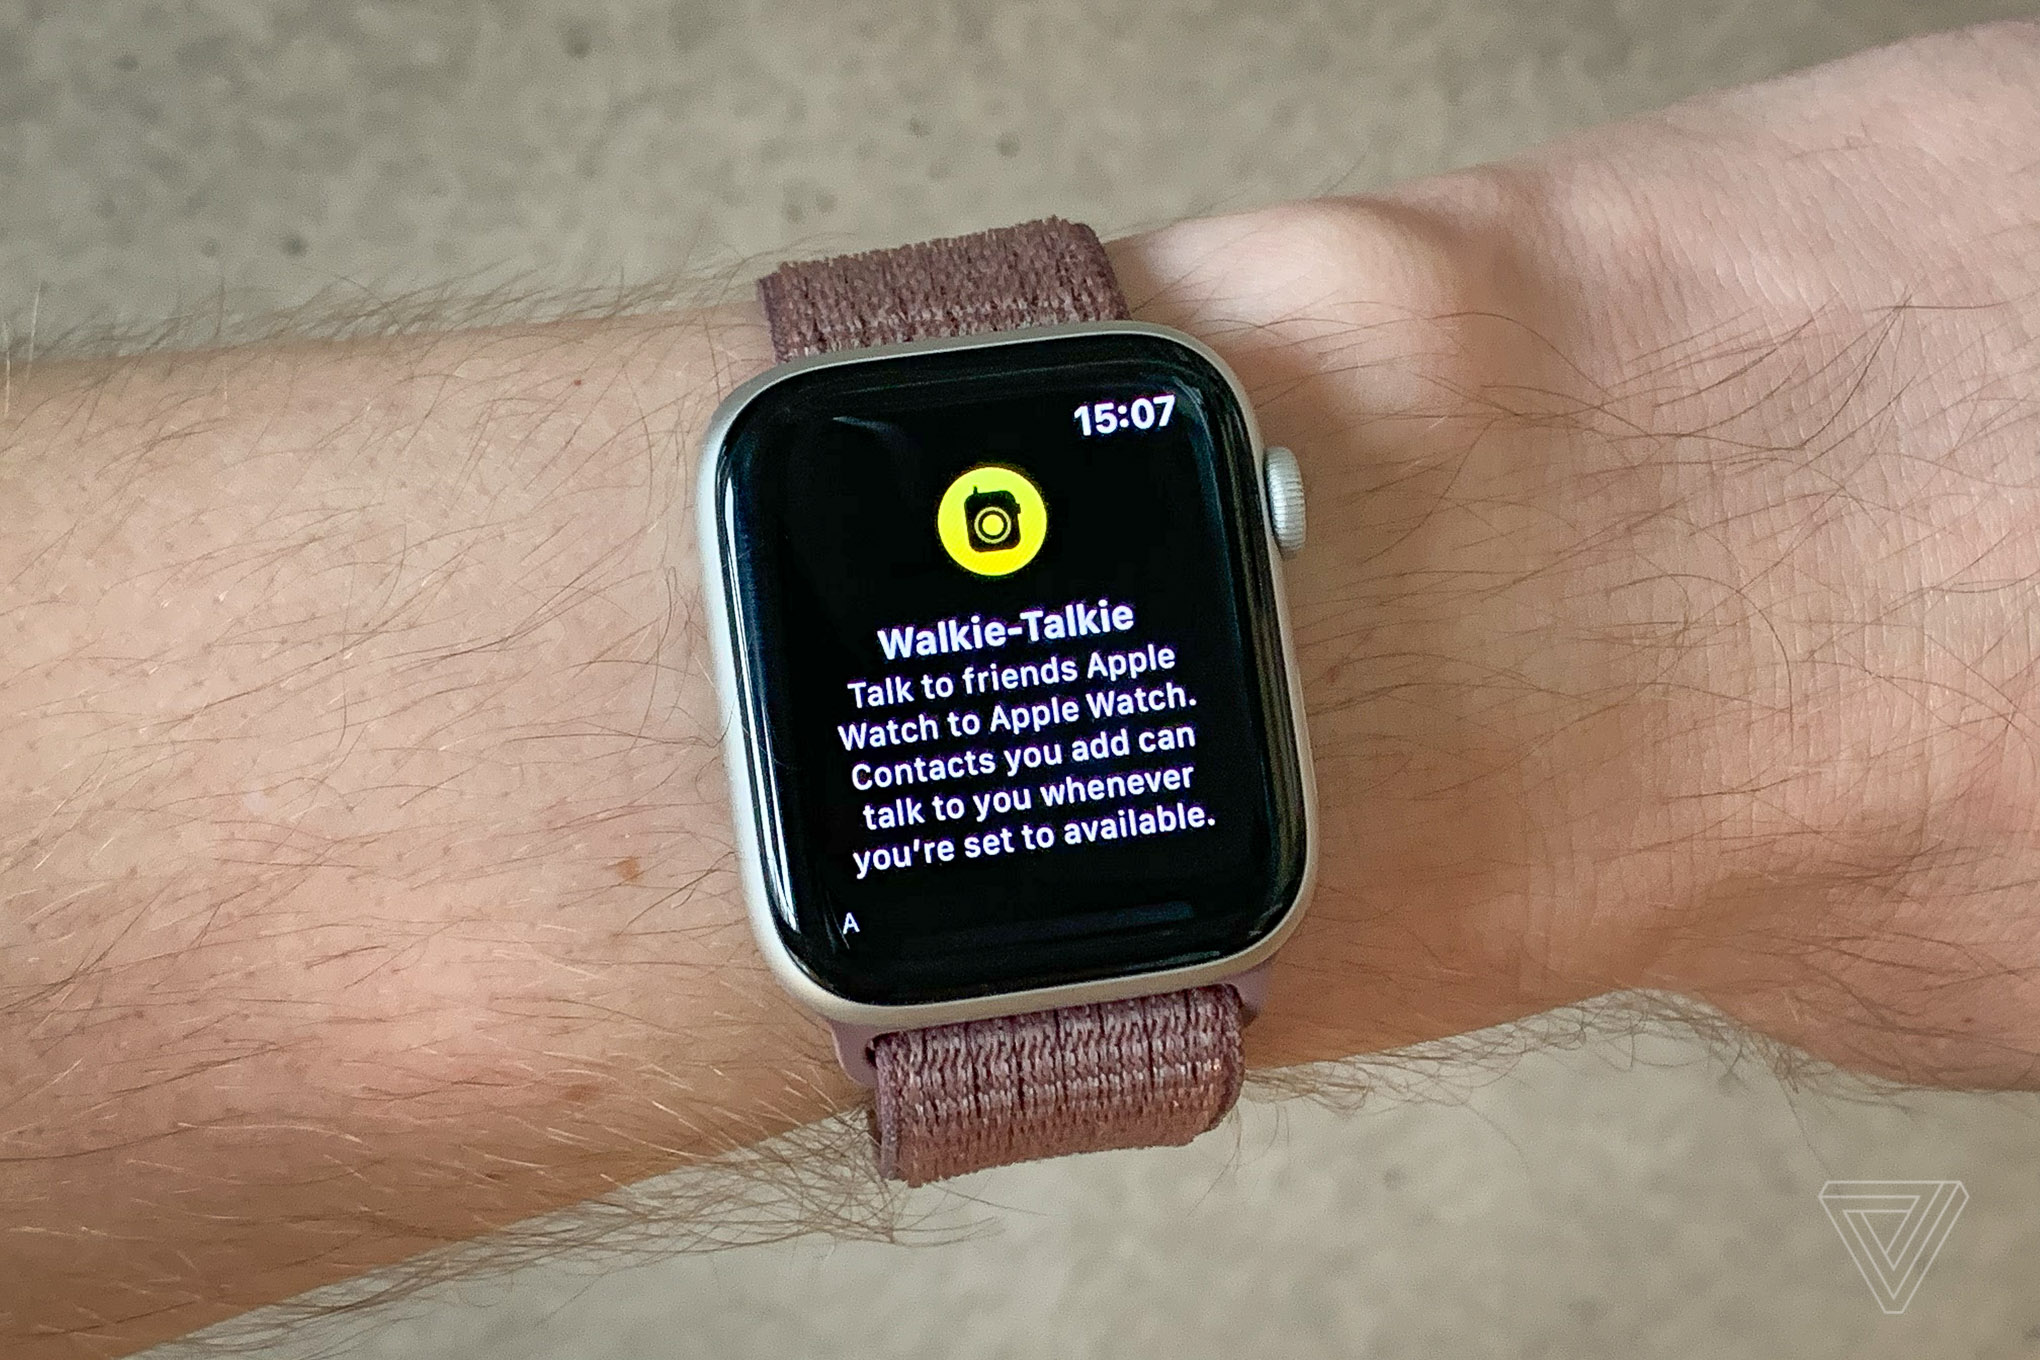 Apple Watch eavesdropping vulnerability forces Apple to